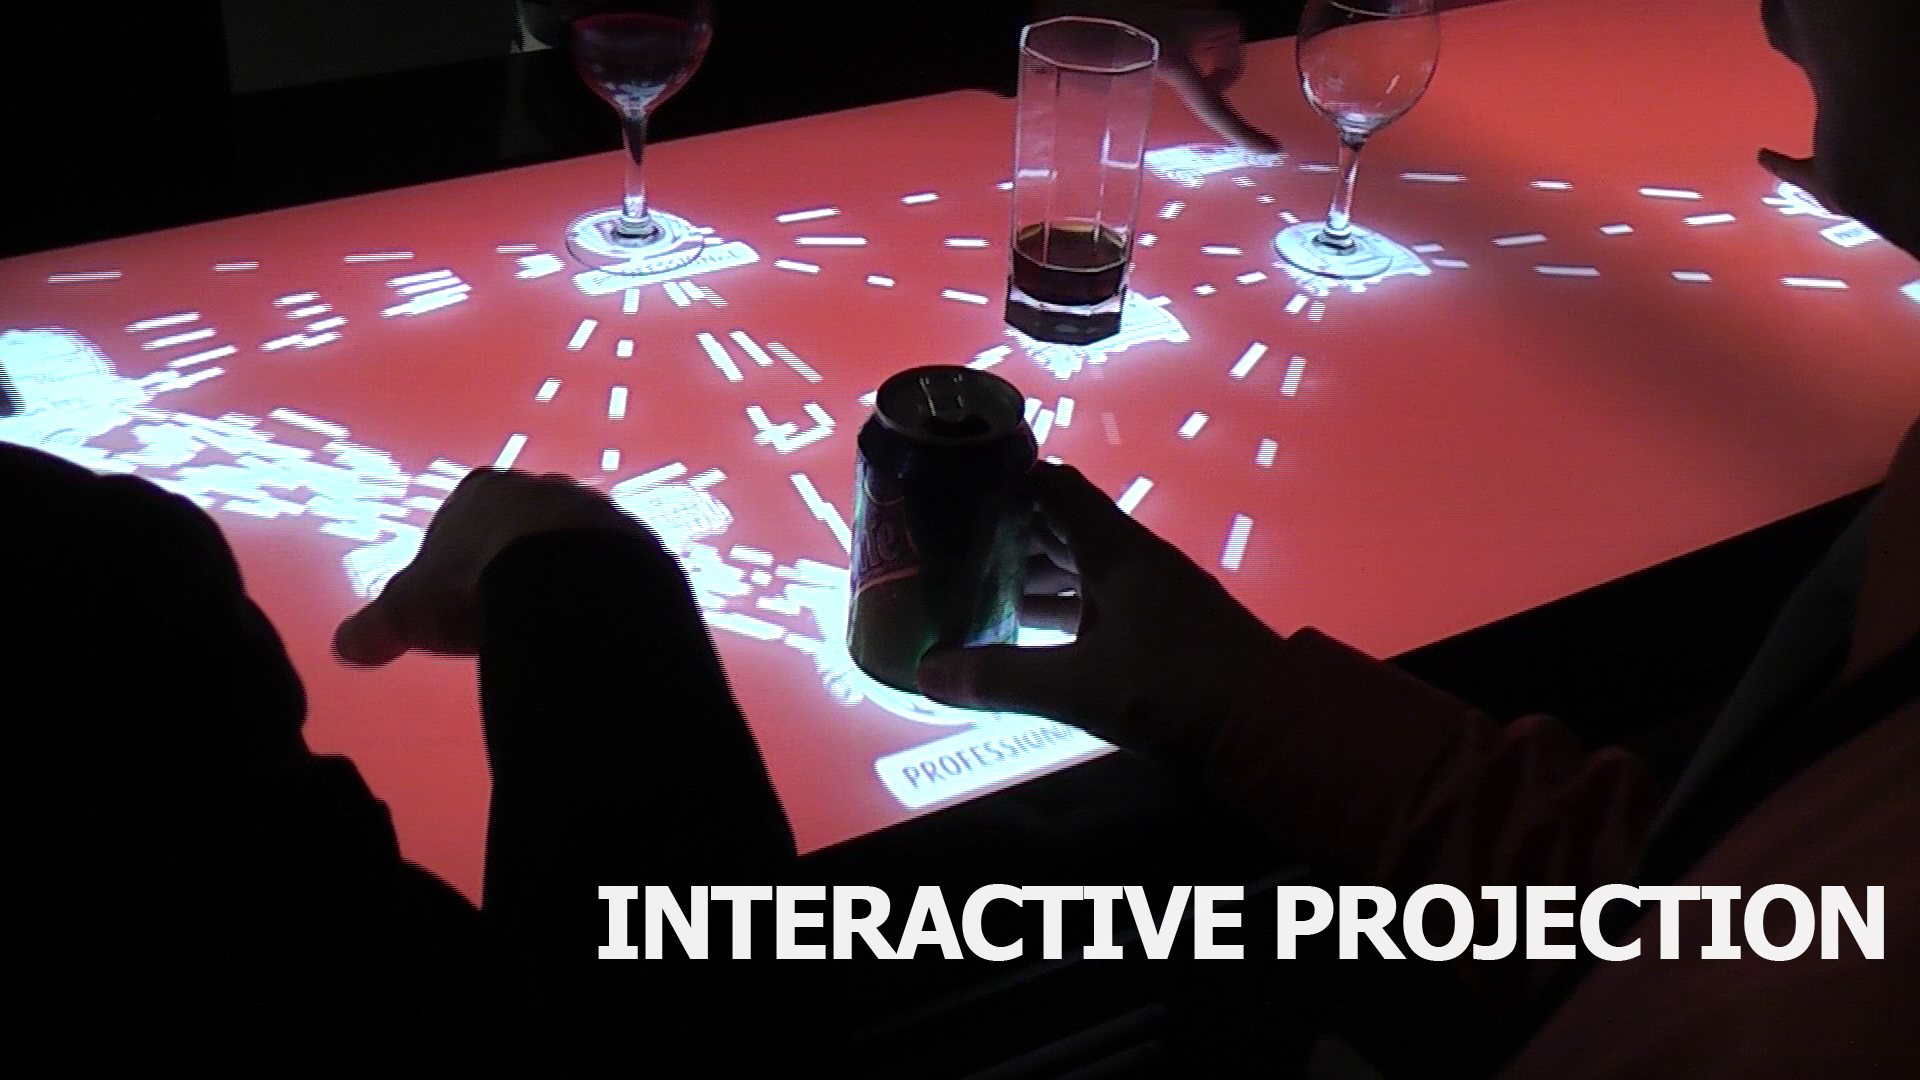 INTERACTIVE PROJECTION BY TOUCHEZ